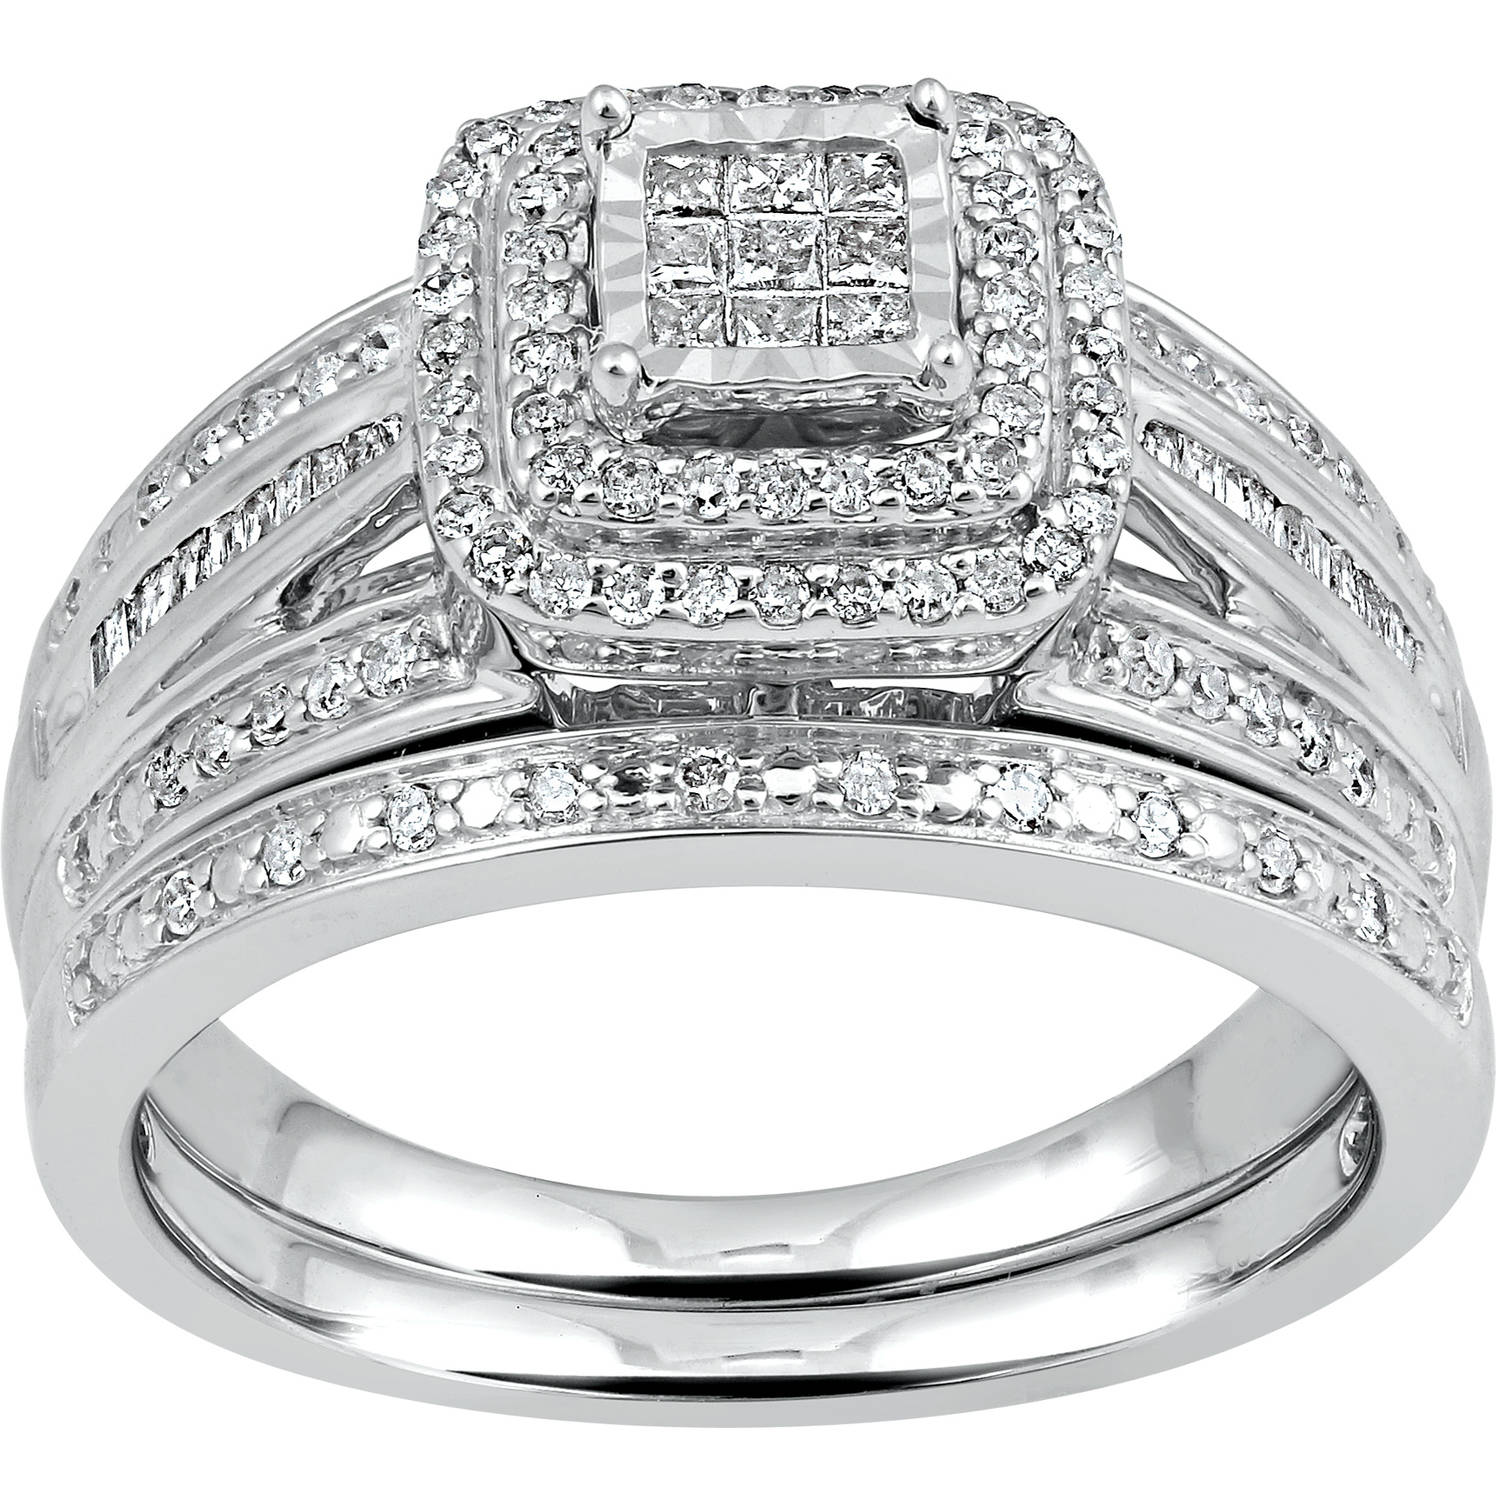 forever bride 12 carat tw diamond sterling silver anniversary ring walmartcom - Wedding Rings Walmart